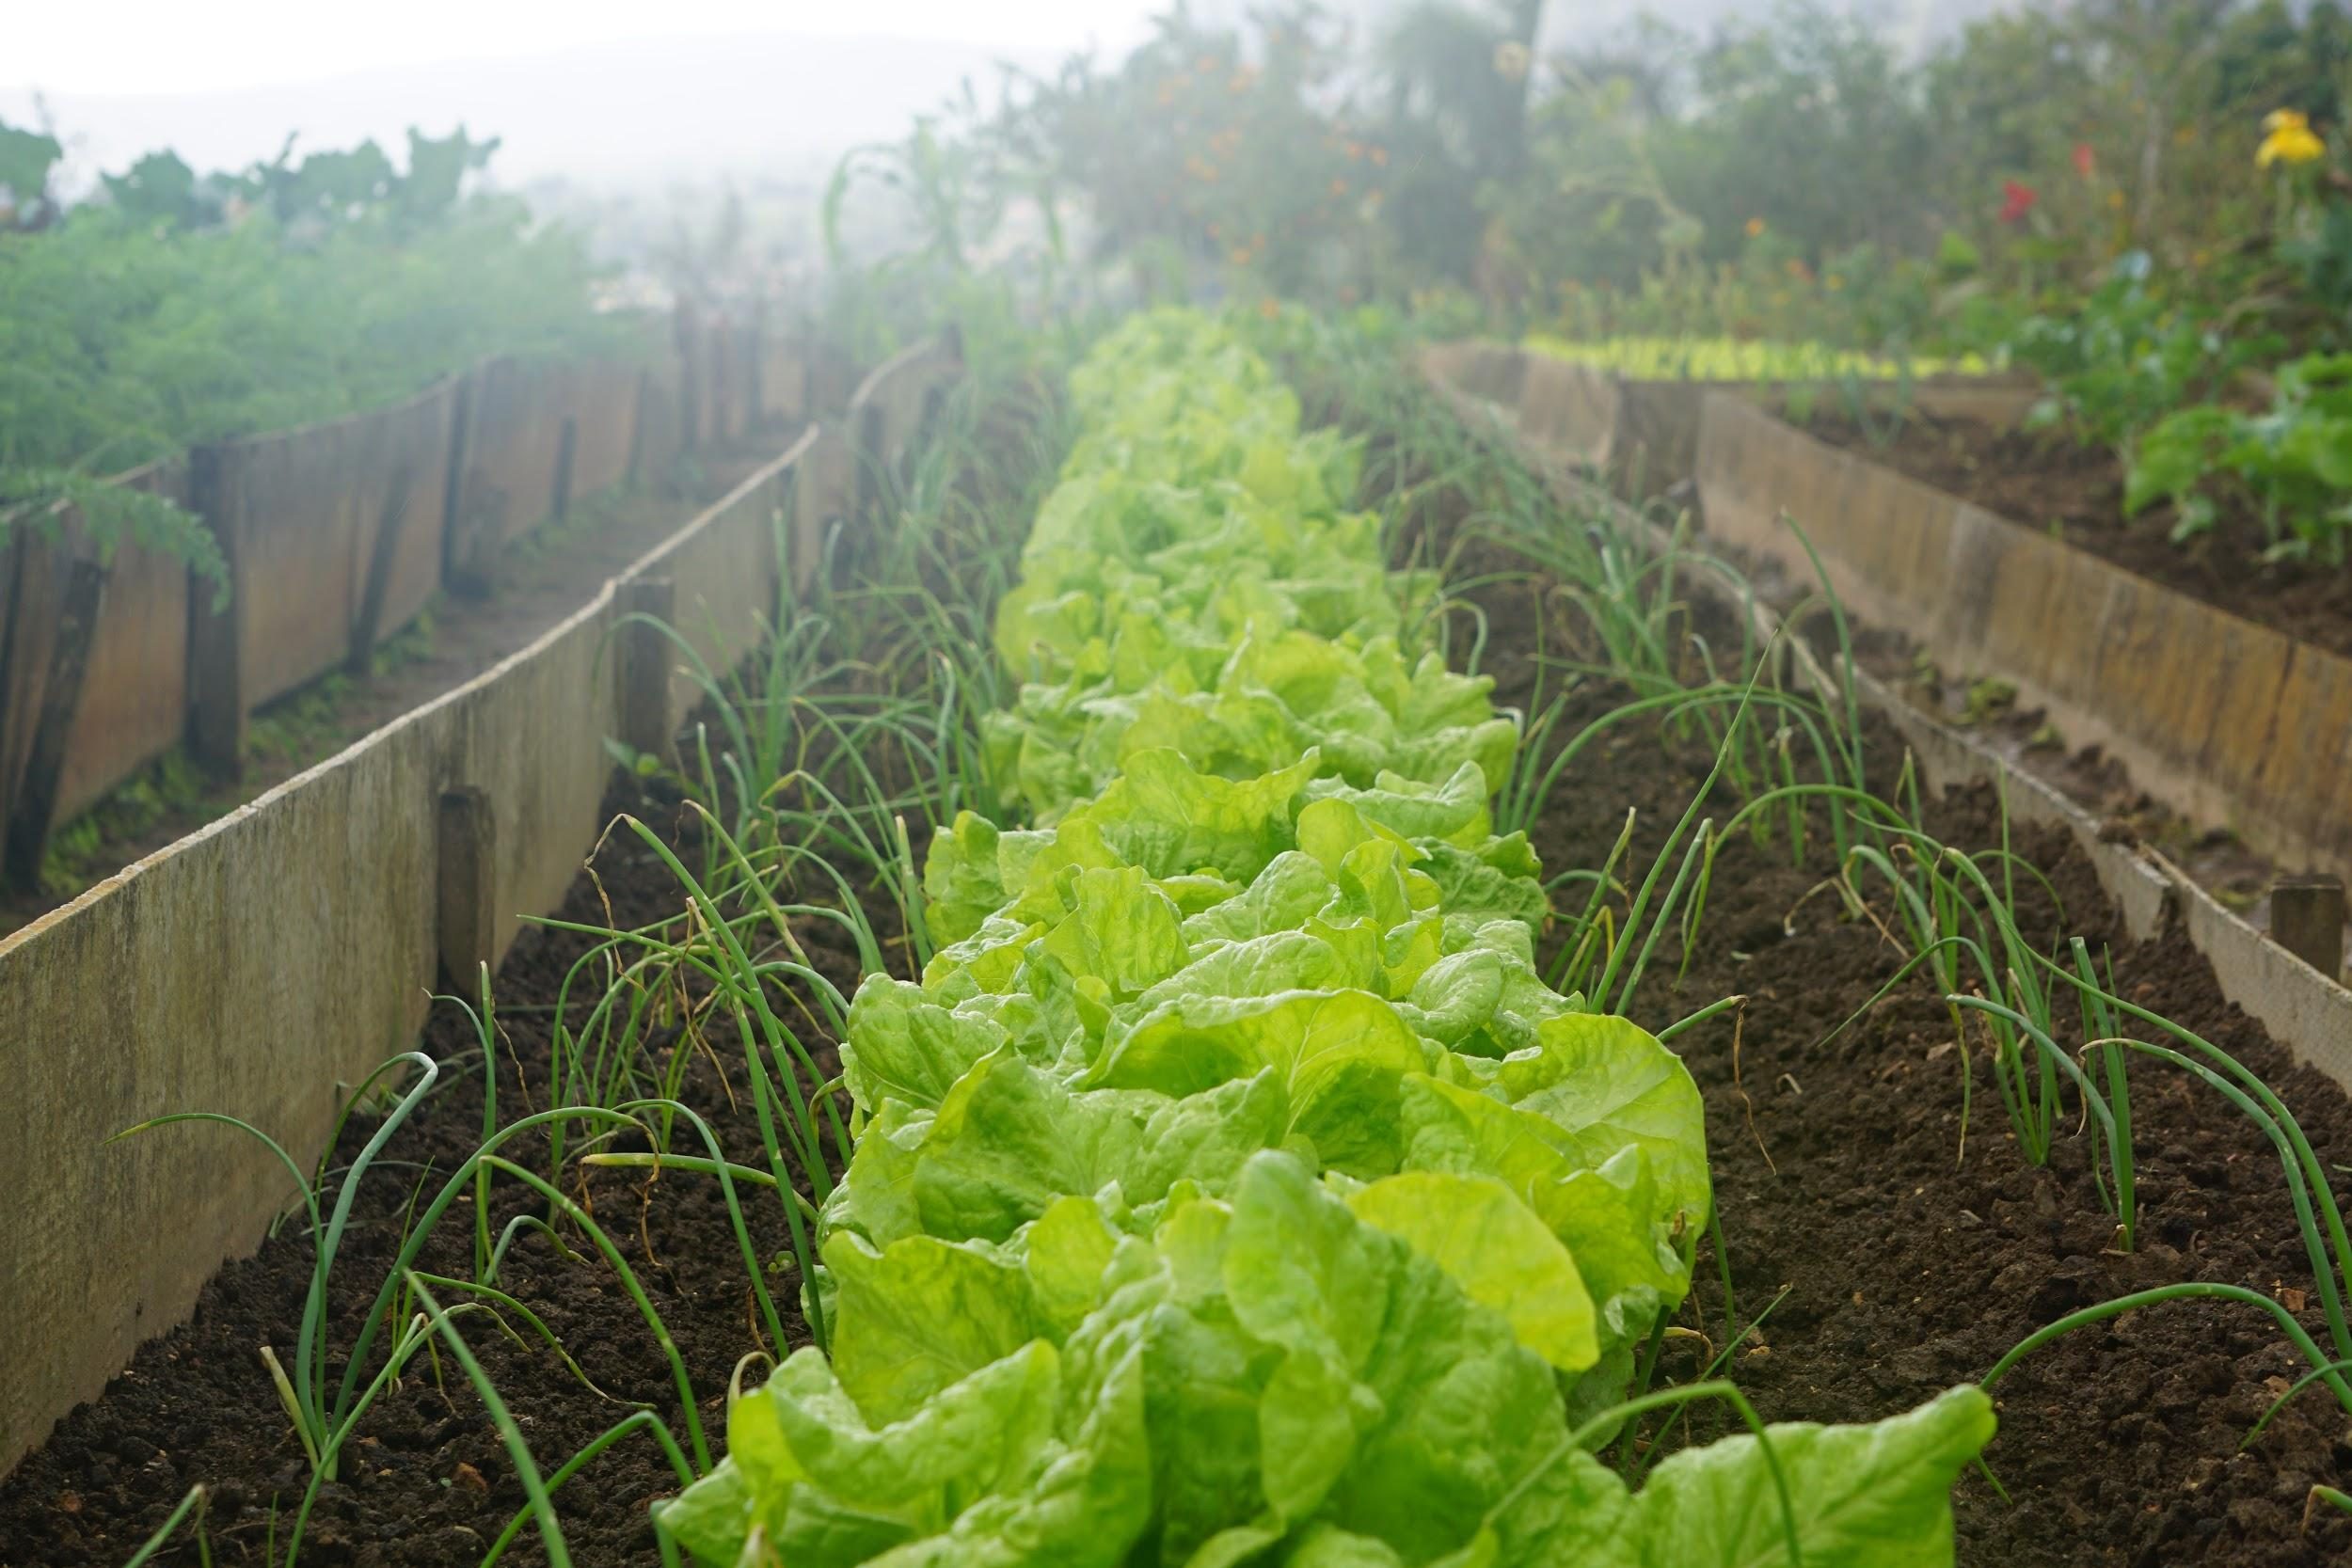 Green leafy vegetables are shown growing in a field of rich, brown soil.